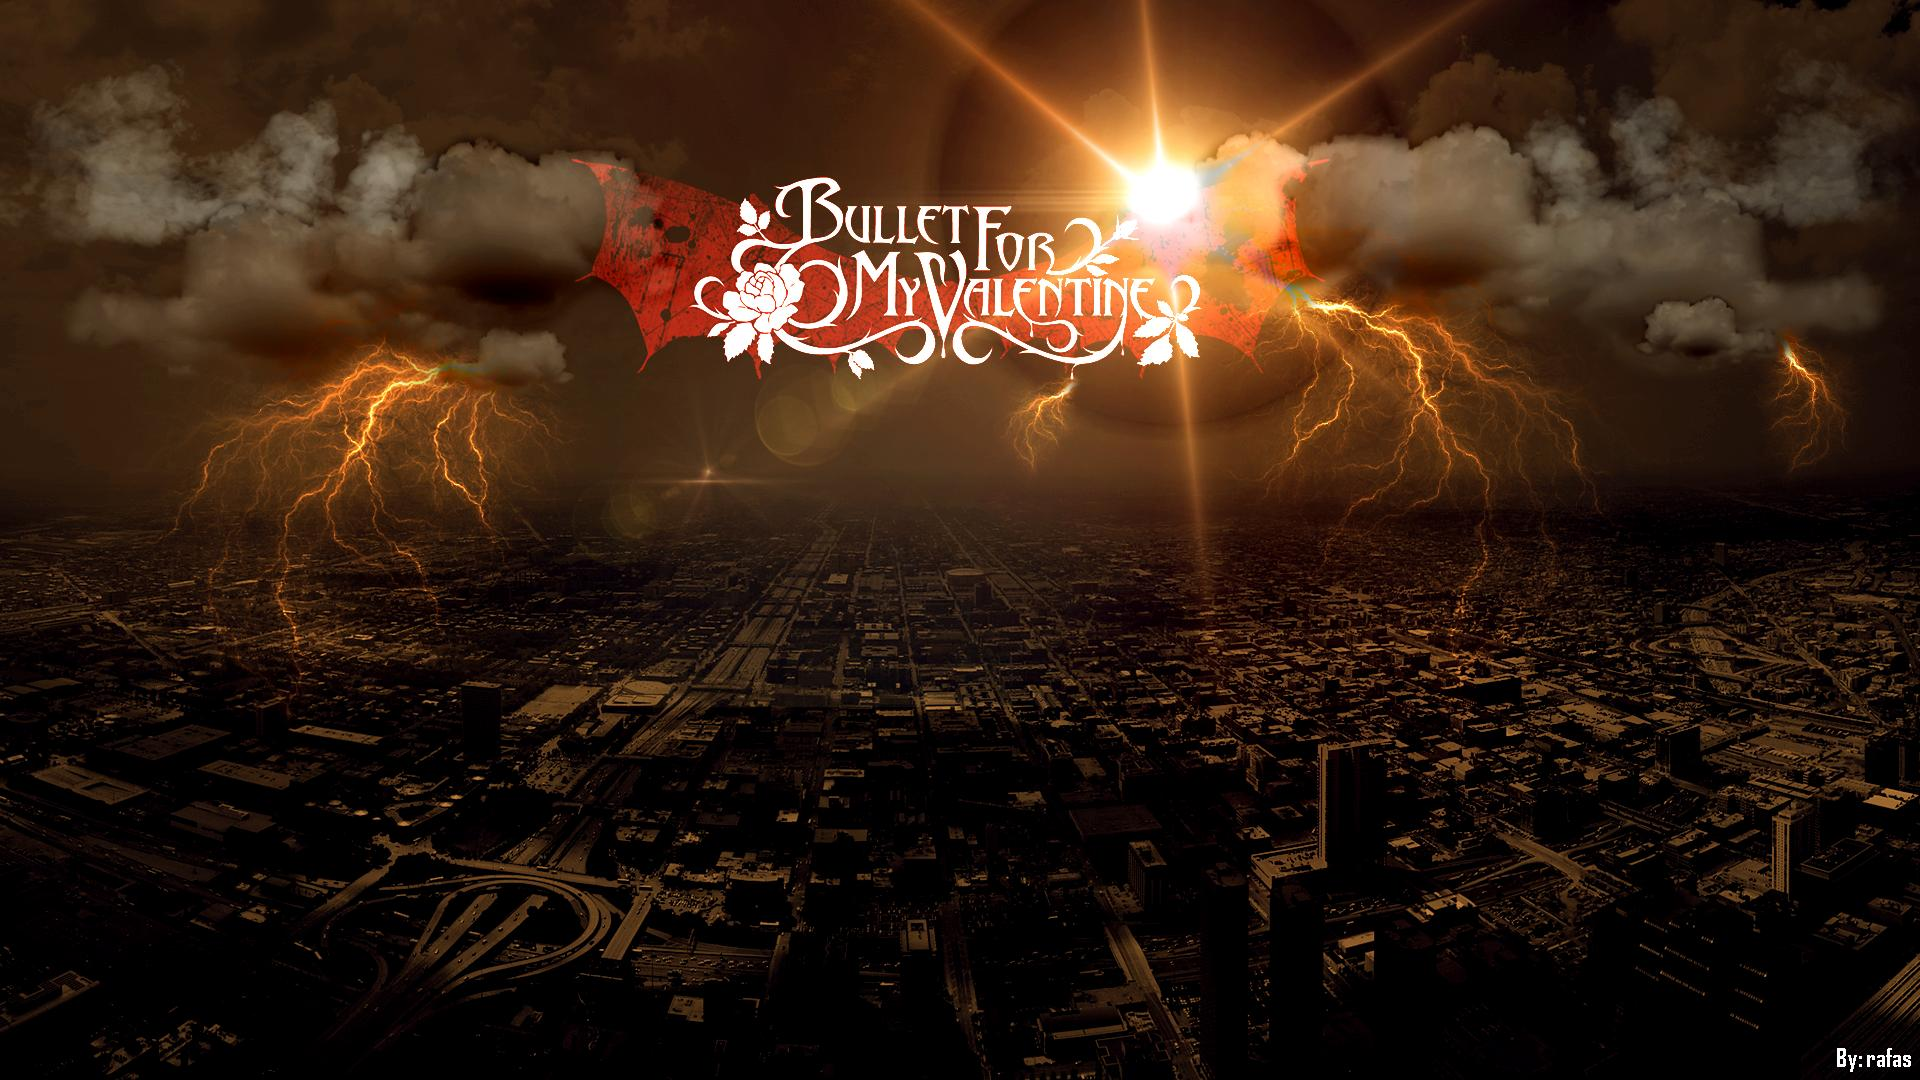 Band Wallpapers Hd Bullet For My Valentine Hd Wallpapers